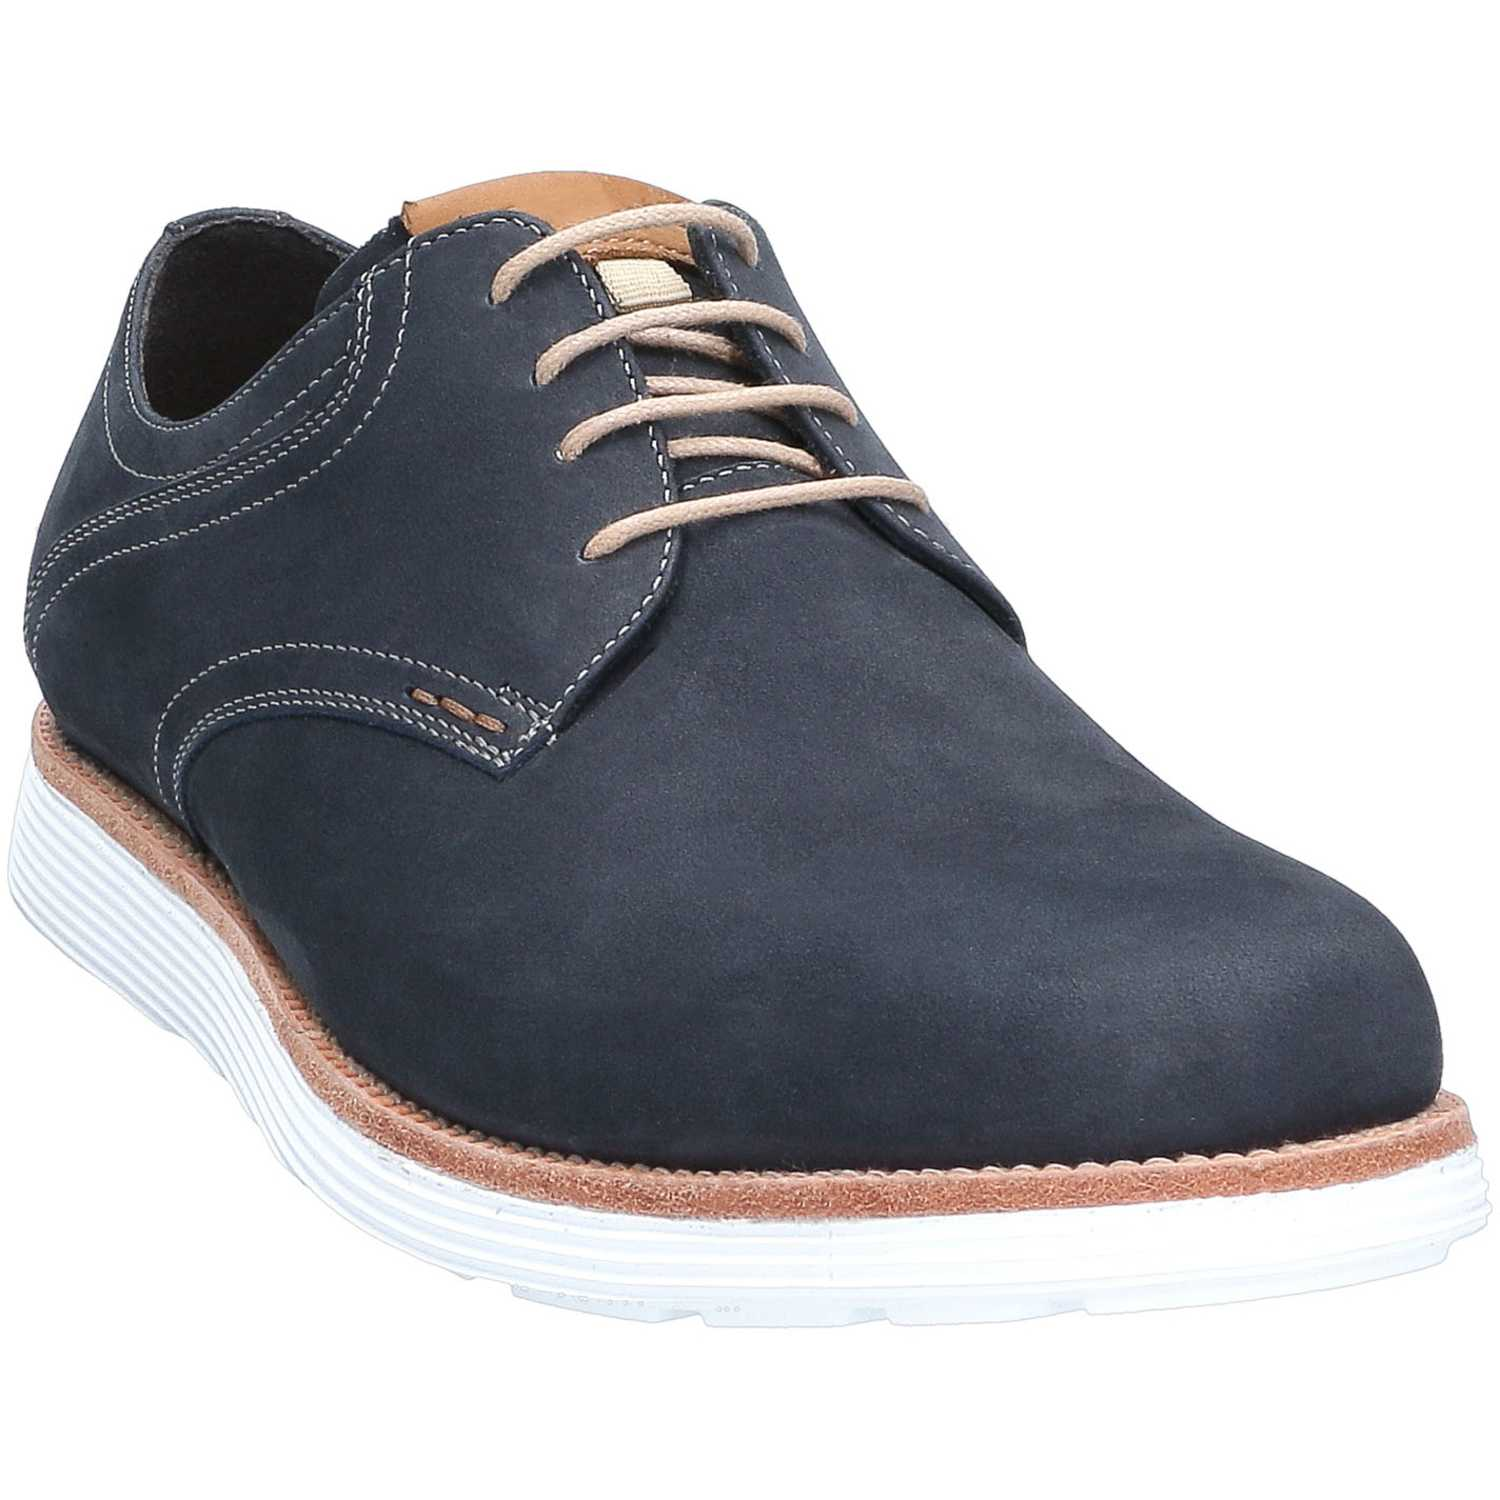 GUANTE prince Navy Oxfords